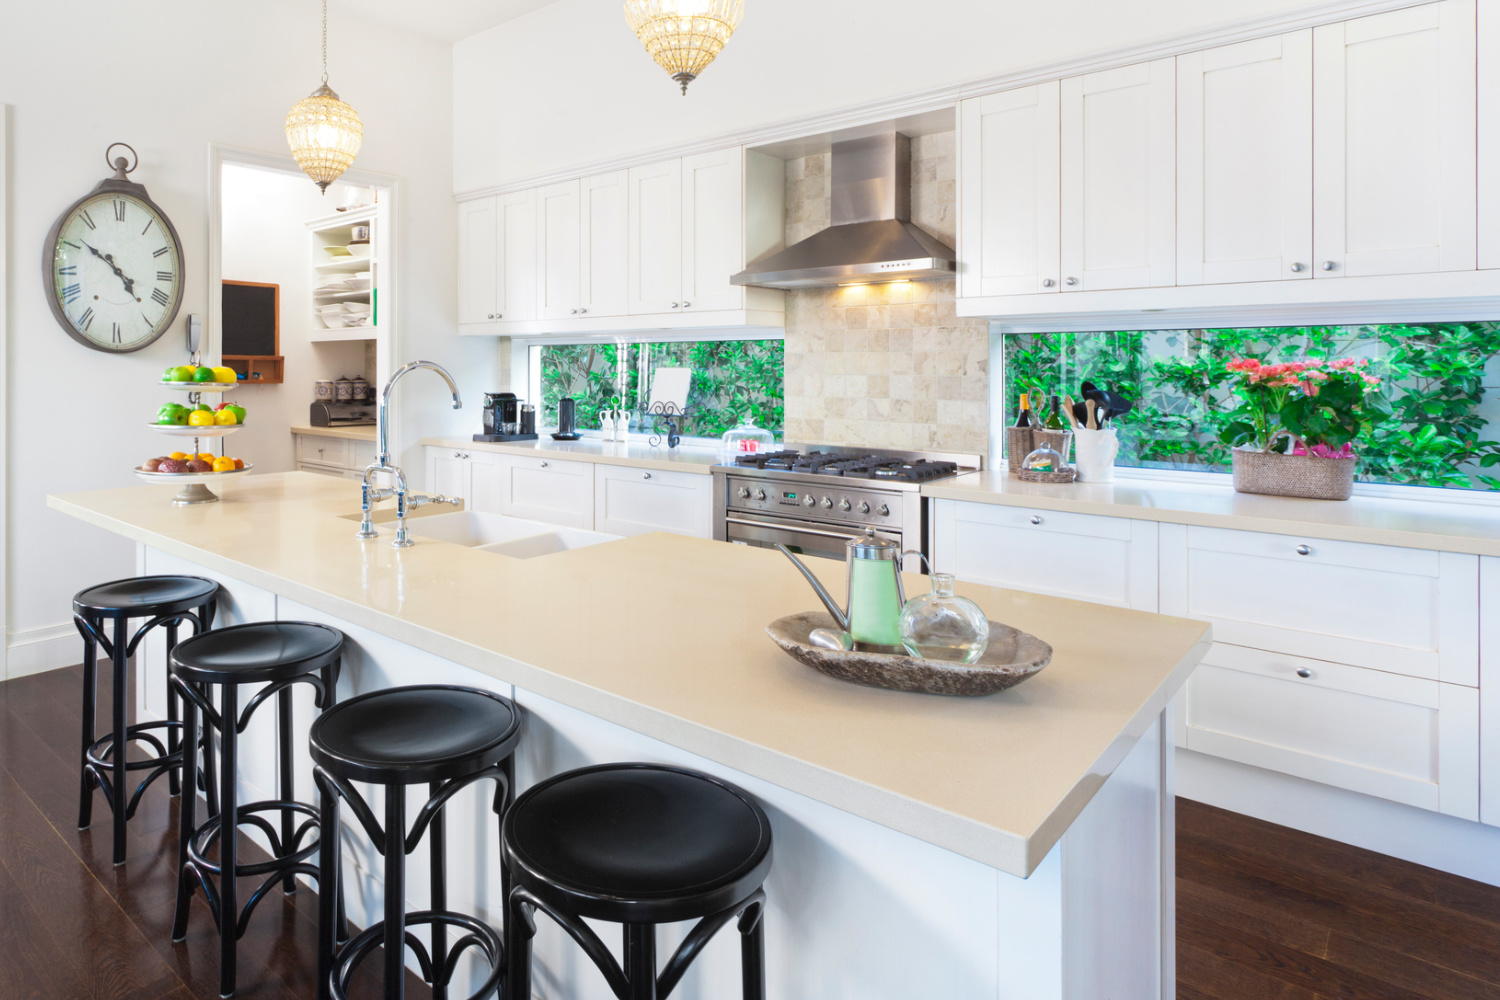 neat kitchen. How to keep kitchen counters clutter-free